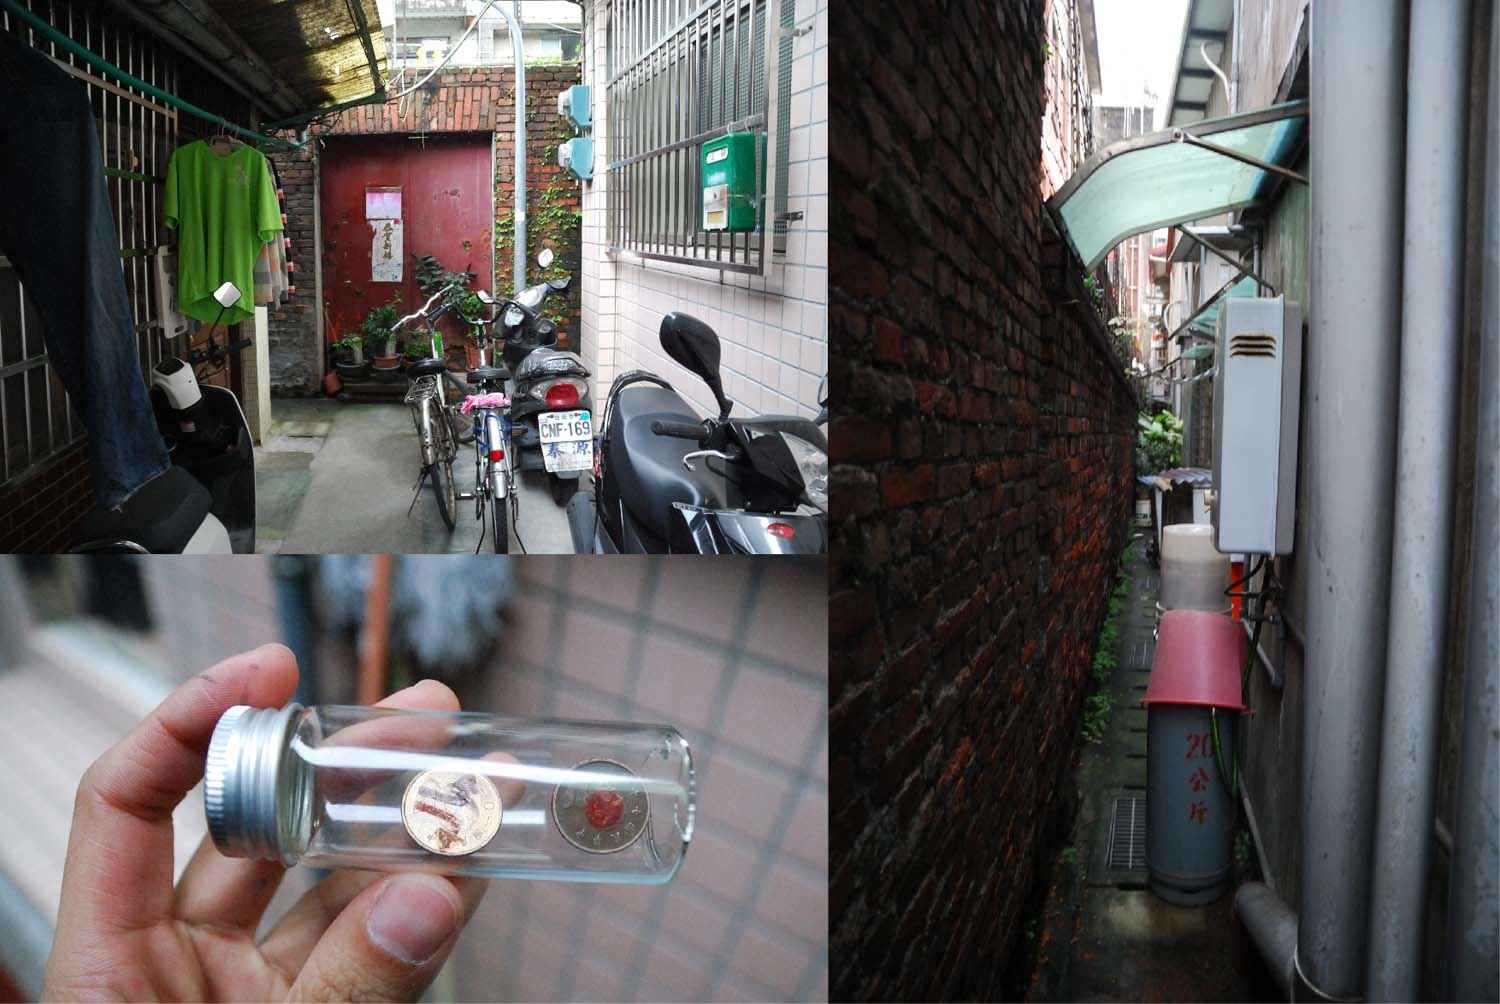 Walked for over 2 hrs to a residential alley. Seemed reaching a dead end, toss again: turn right. It's a gap barely for a person to pass through. 差不多走了兩個多小時,來到一條住宅的小巷,眼看己經到末路,擲到向右轉,是一條只有一個身位的縫隙。